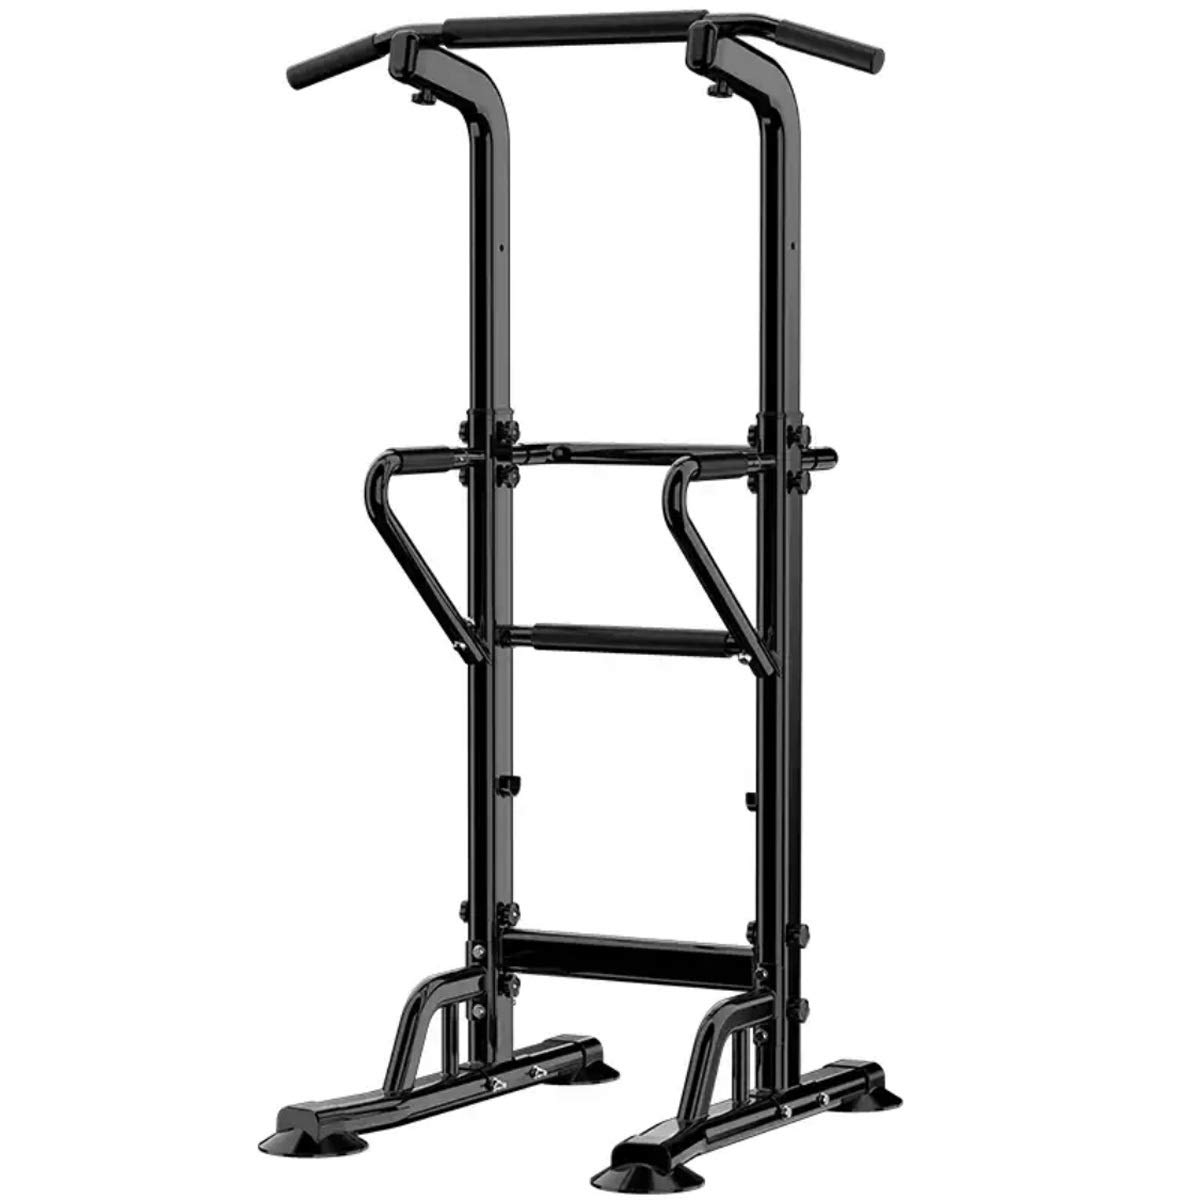 Baianju Pull-ups Home Horizontal Bar Household Indoor Adult Single Pole Household Cranes Family Single-Barrel Racks Multi-Functional Fitness Equipment Multi-Function Pull-ups by Baianju